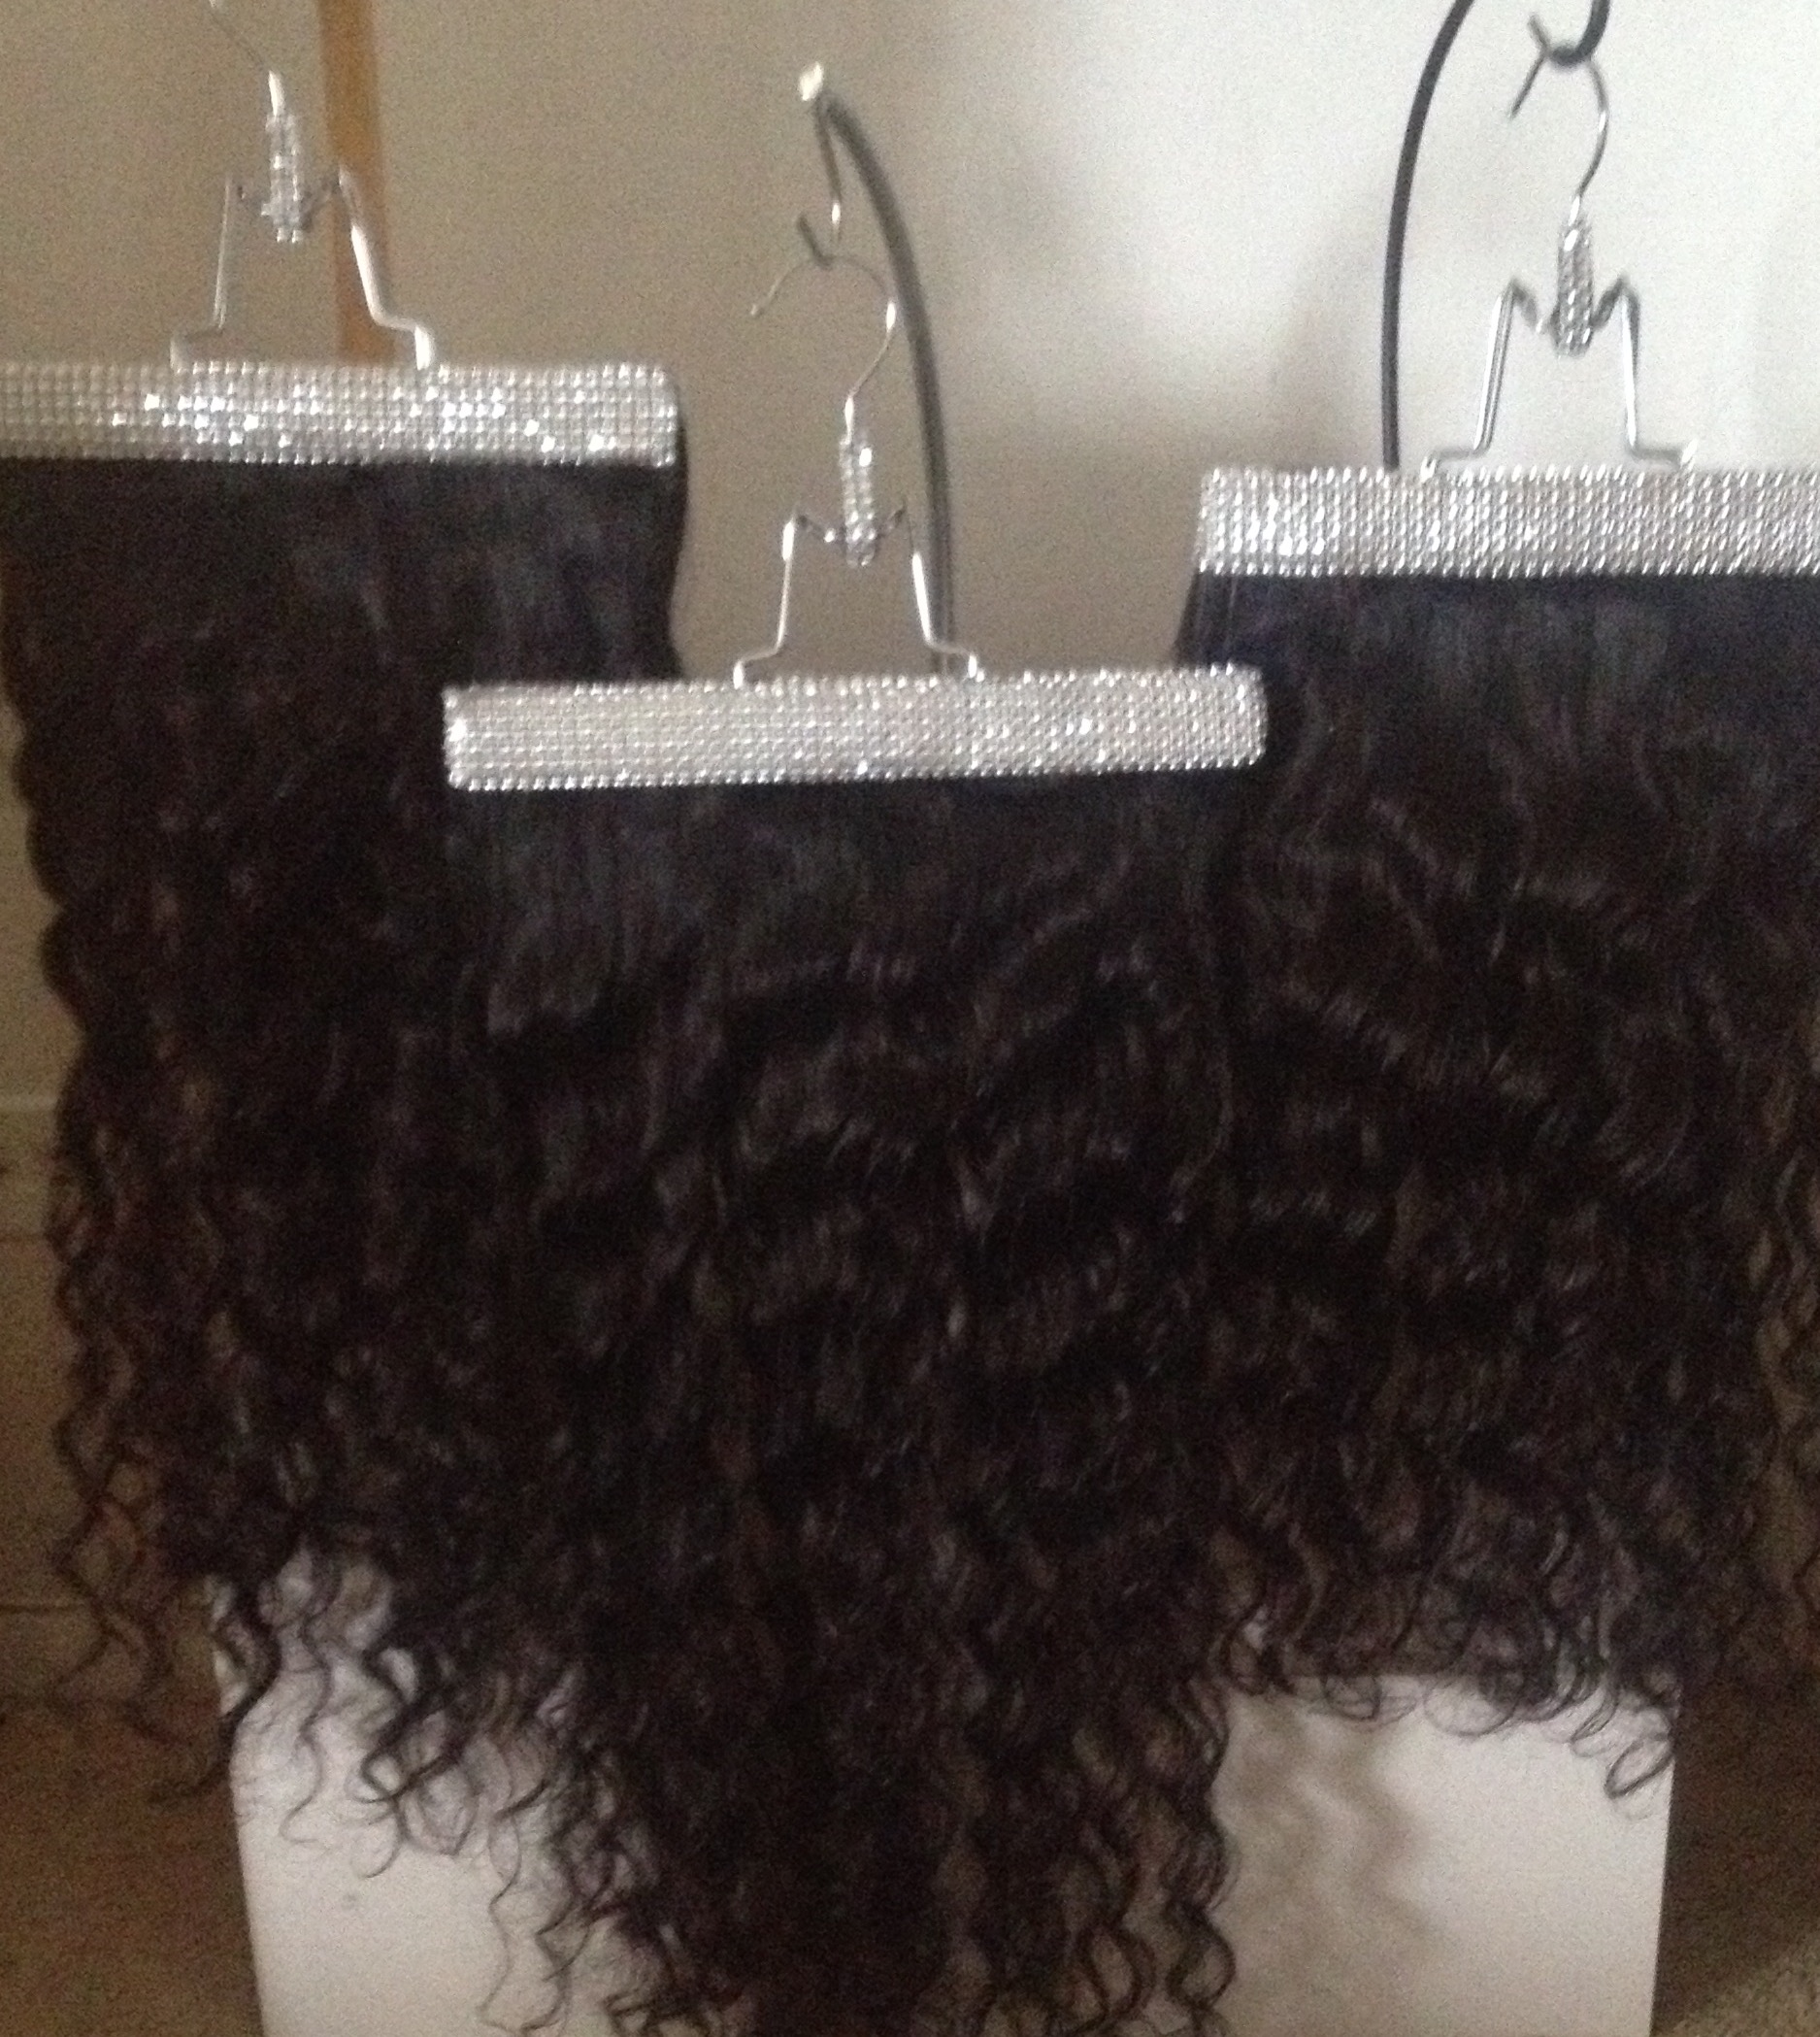 Get your one of a kind exclusive krysmari glam hair extensions get your one of a kind exclusive krysmari glam hair extensions hangers for your hair collection or brand how to sell hair extensions pmusecretfo Gallery